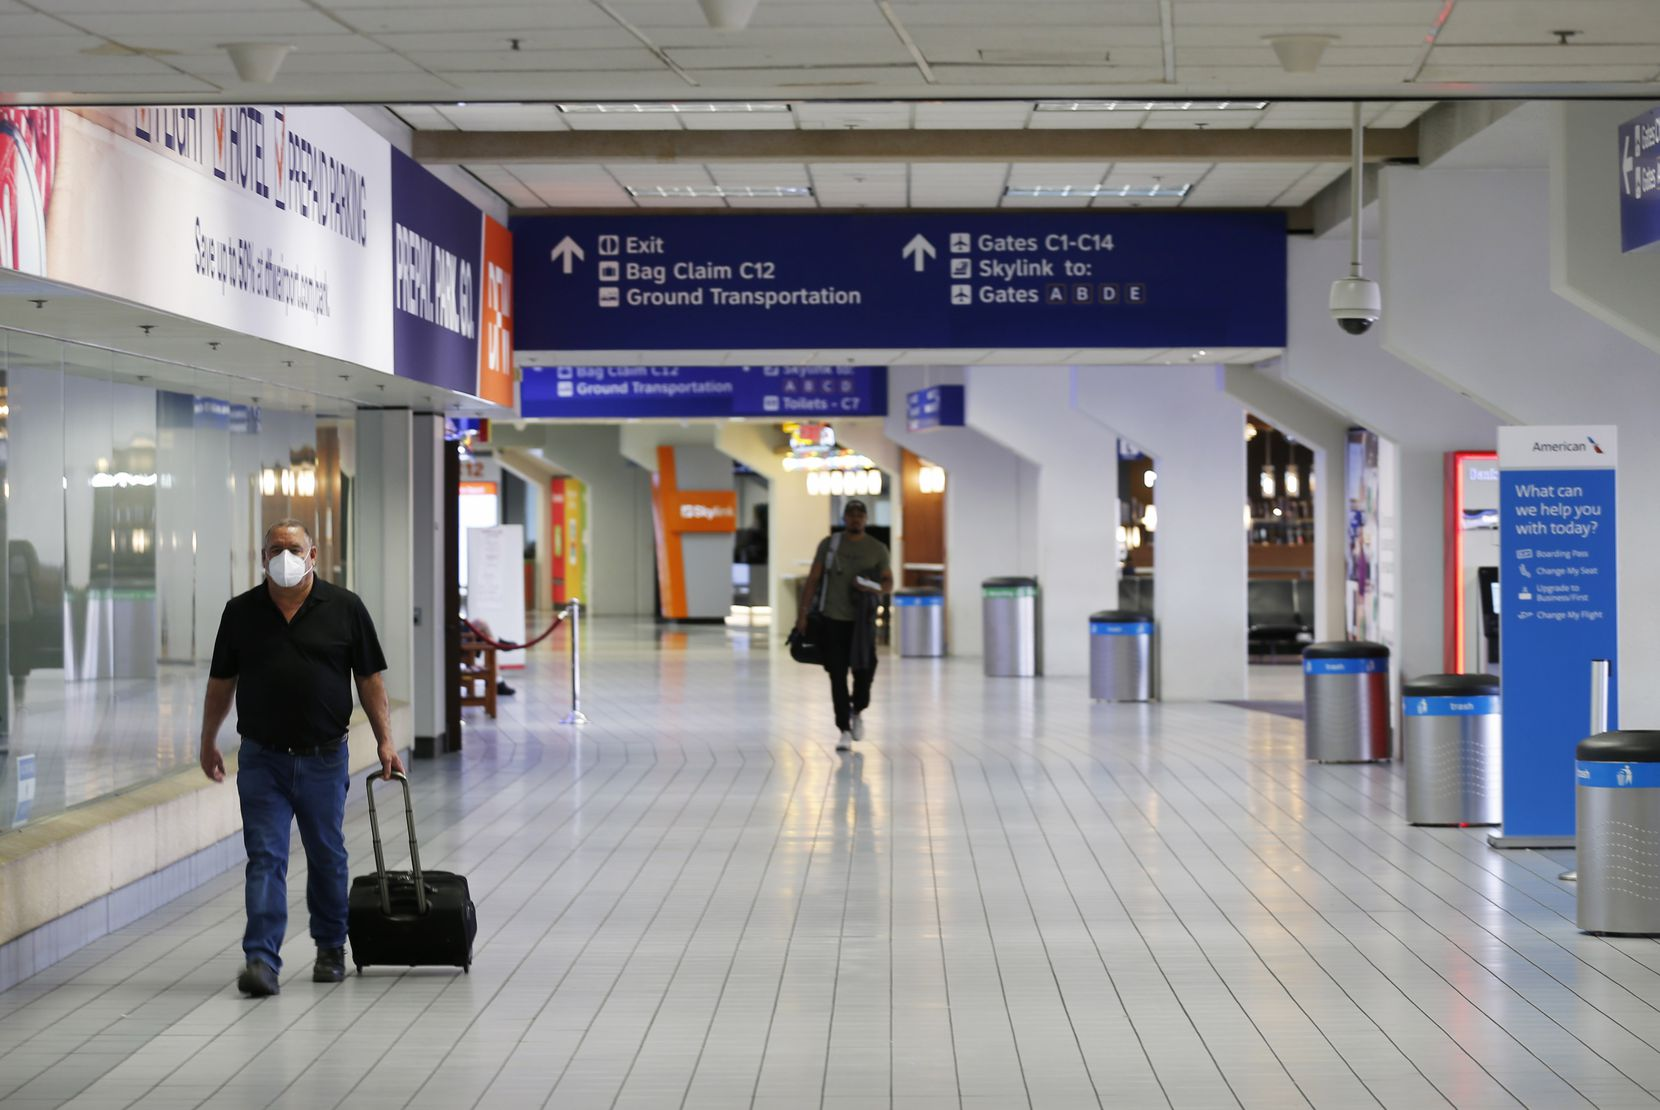 People make their way through terminal C at DFW International Airport on April 8. The coronavirus pandemic has made an impact on the travel industry.